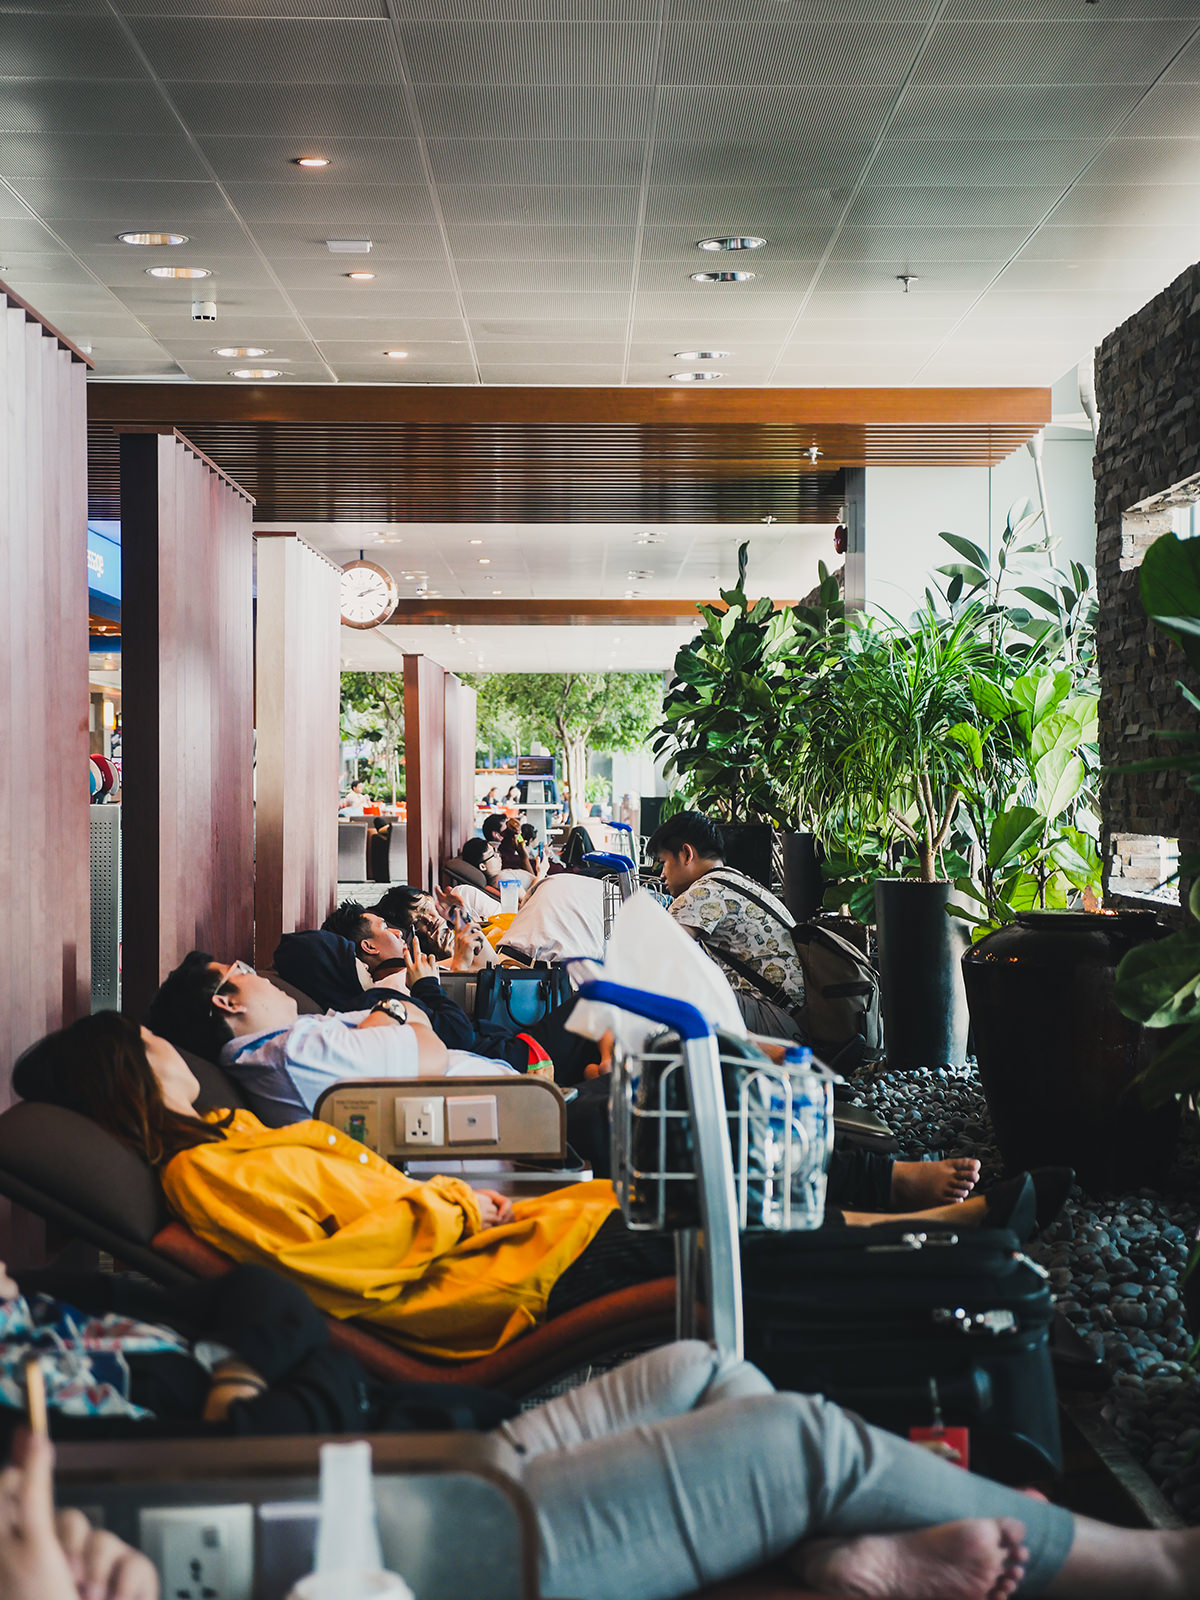 What: Free-to-use snooze lounge<br>Where: Terminal 3 Departure Transit Hall North